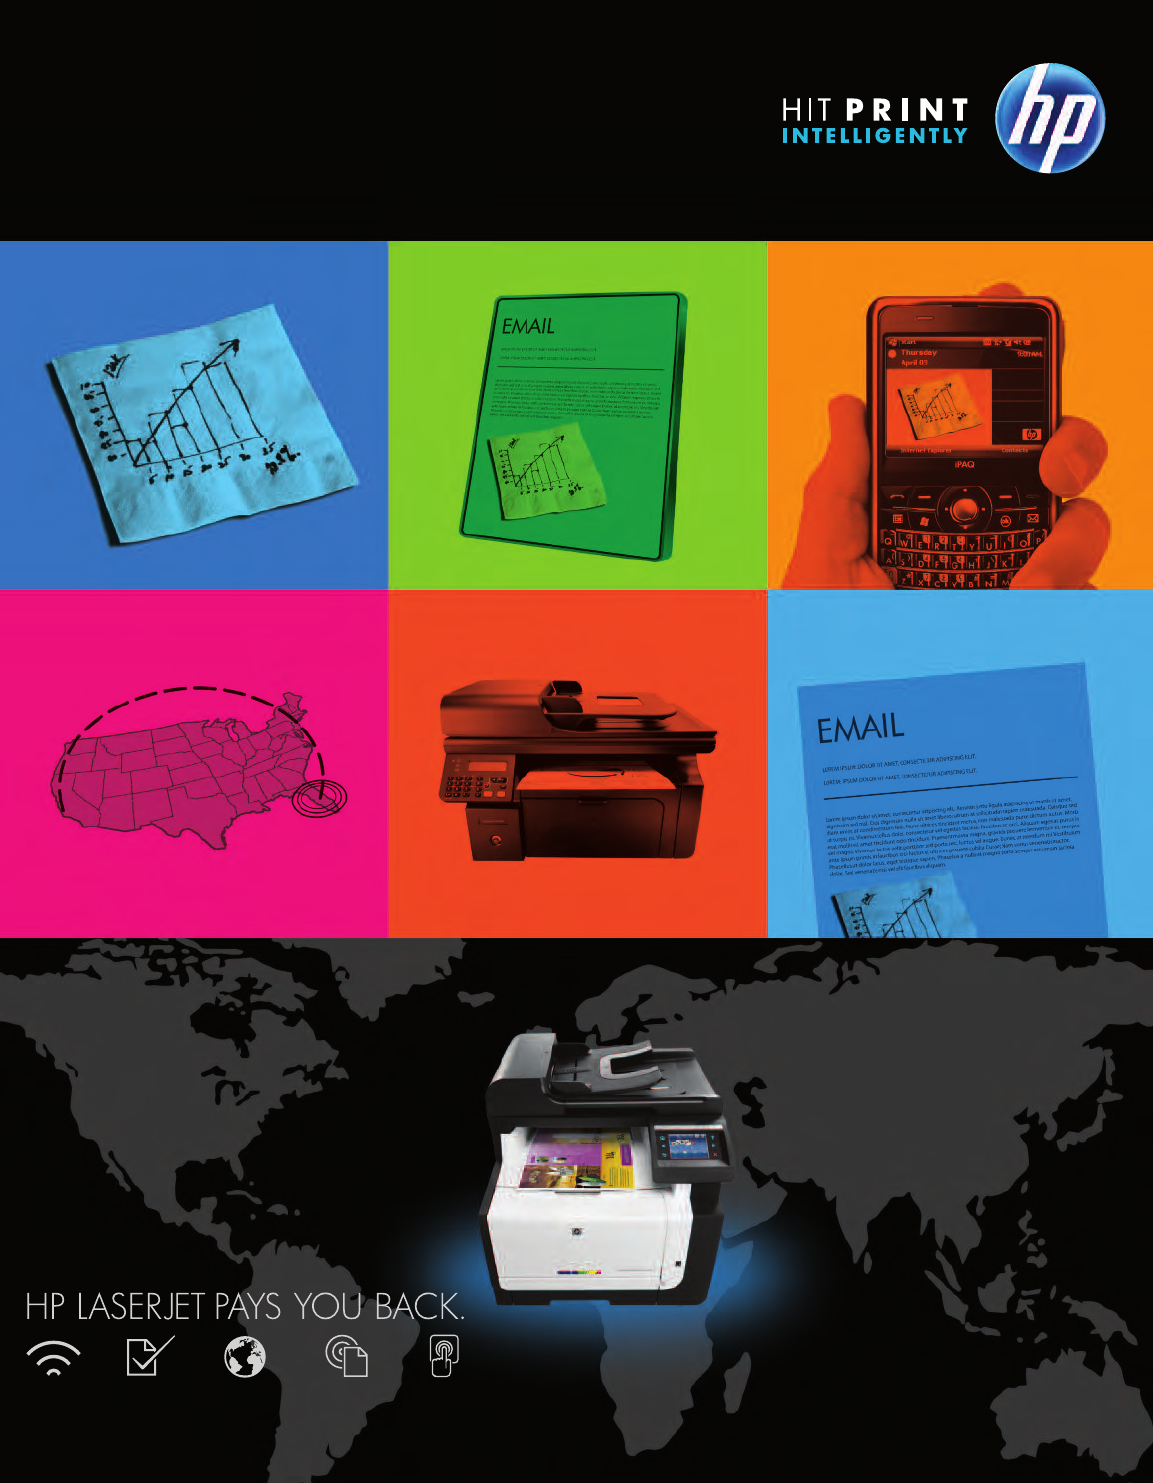 Hp printing and digital imaging products selection guide january hp printing and digital imaging products selection guide january 2011 your quarterly at a glance guide to hp printing and digital imaging products fandeluxe Image collections